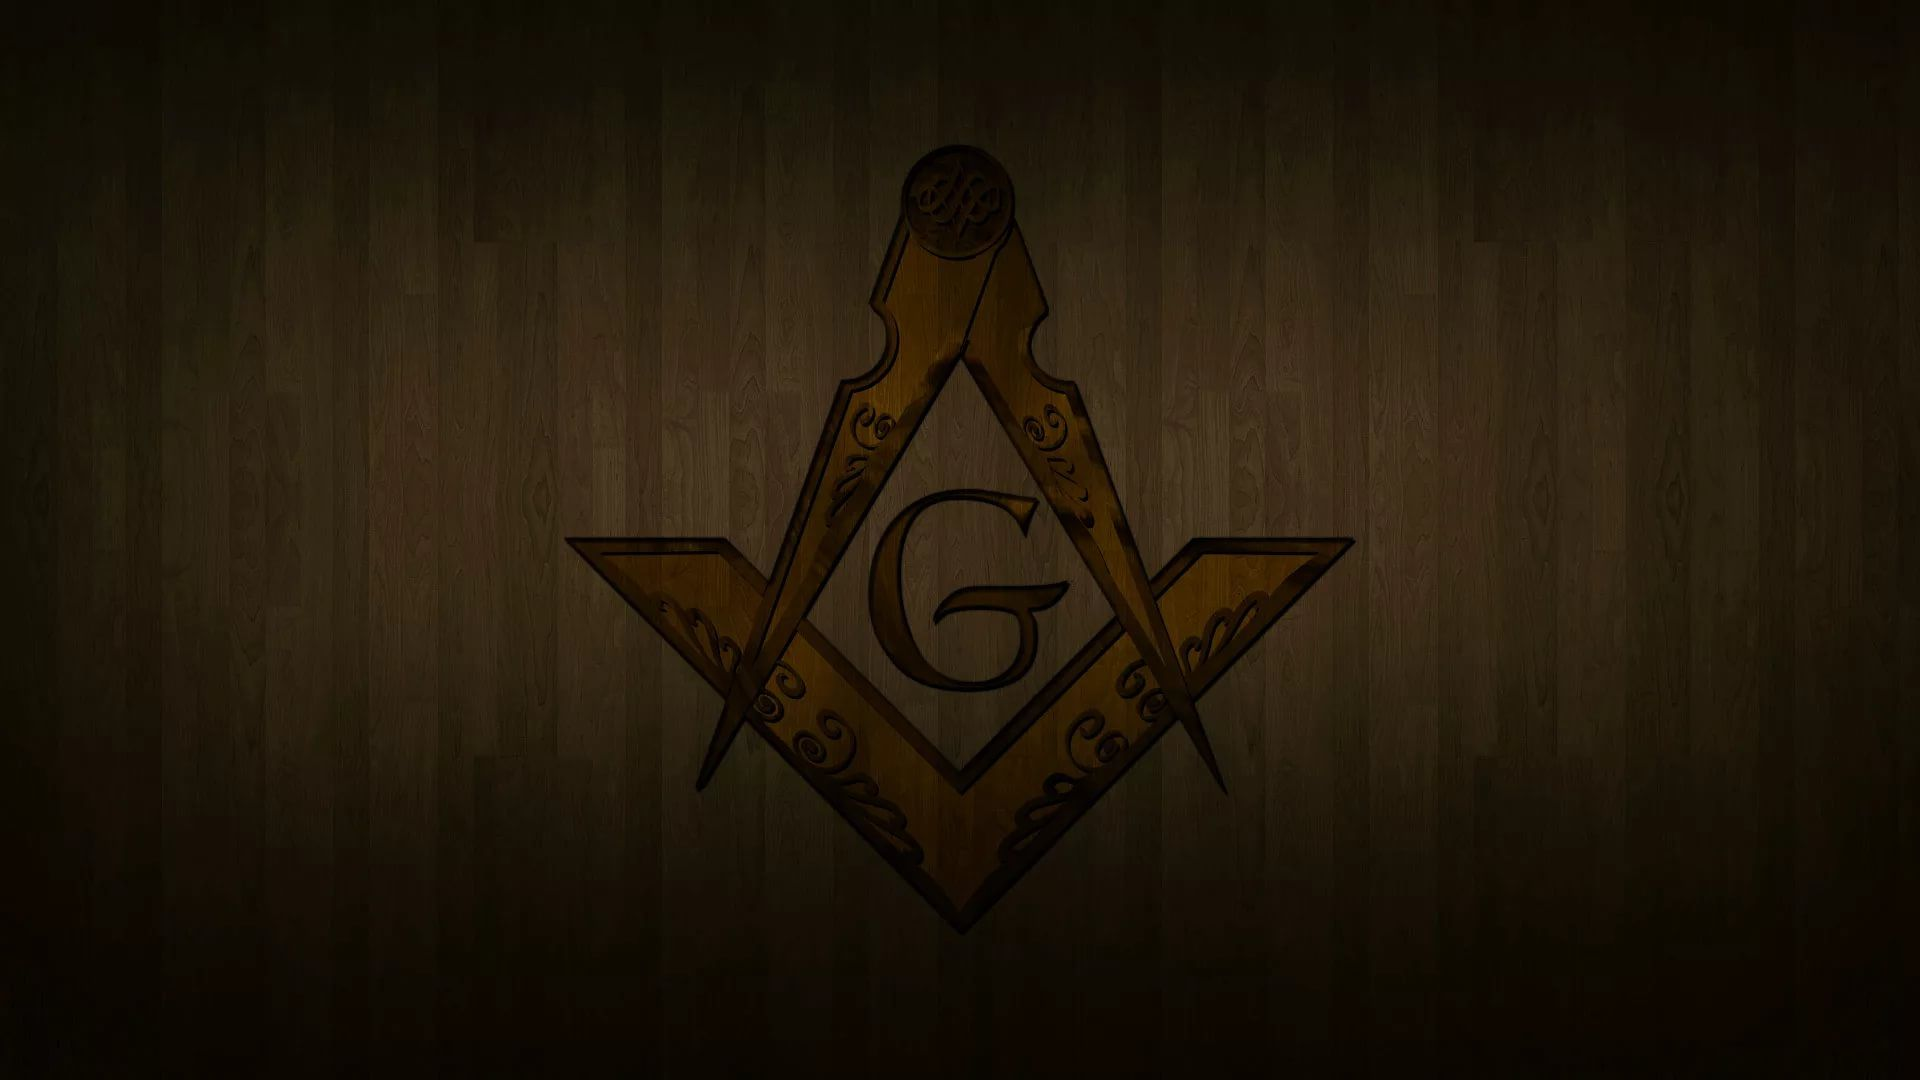 Freemason pc wallpaper